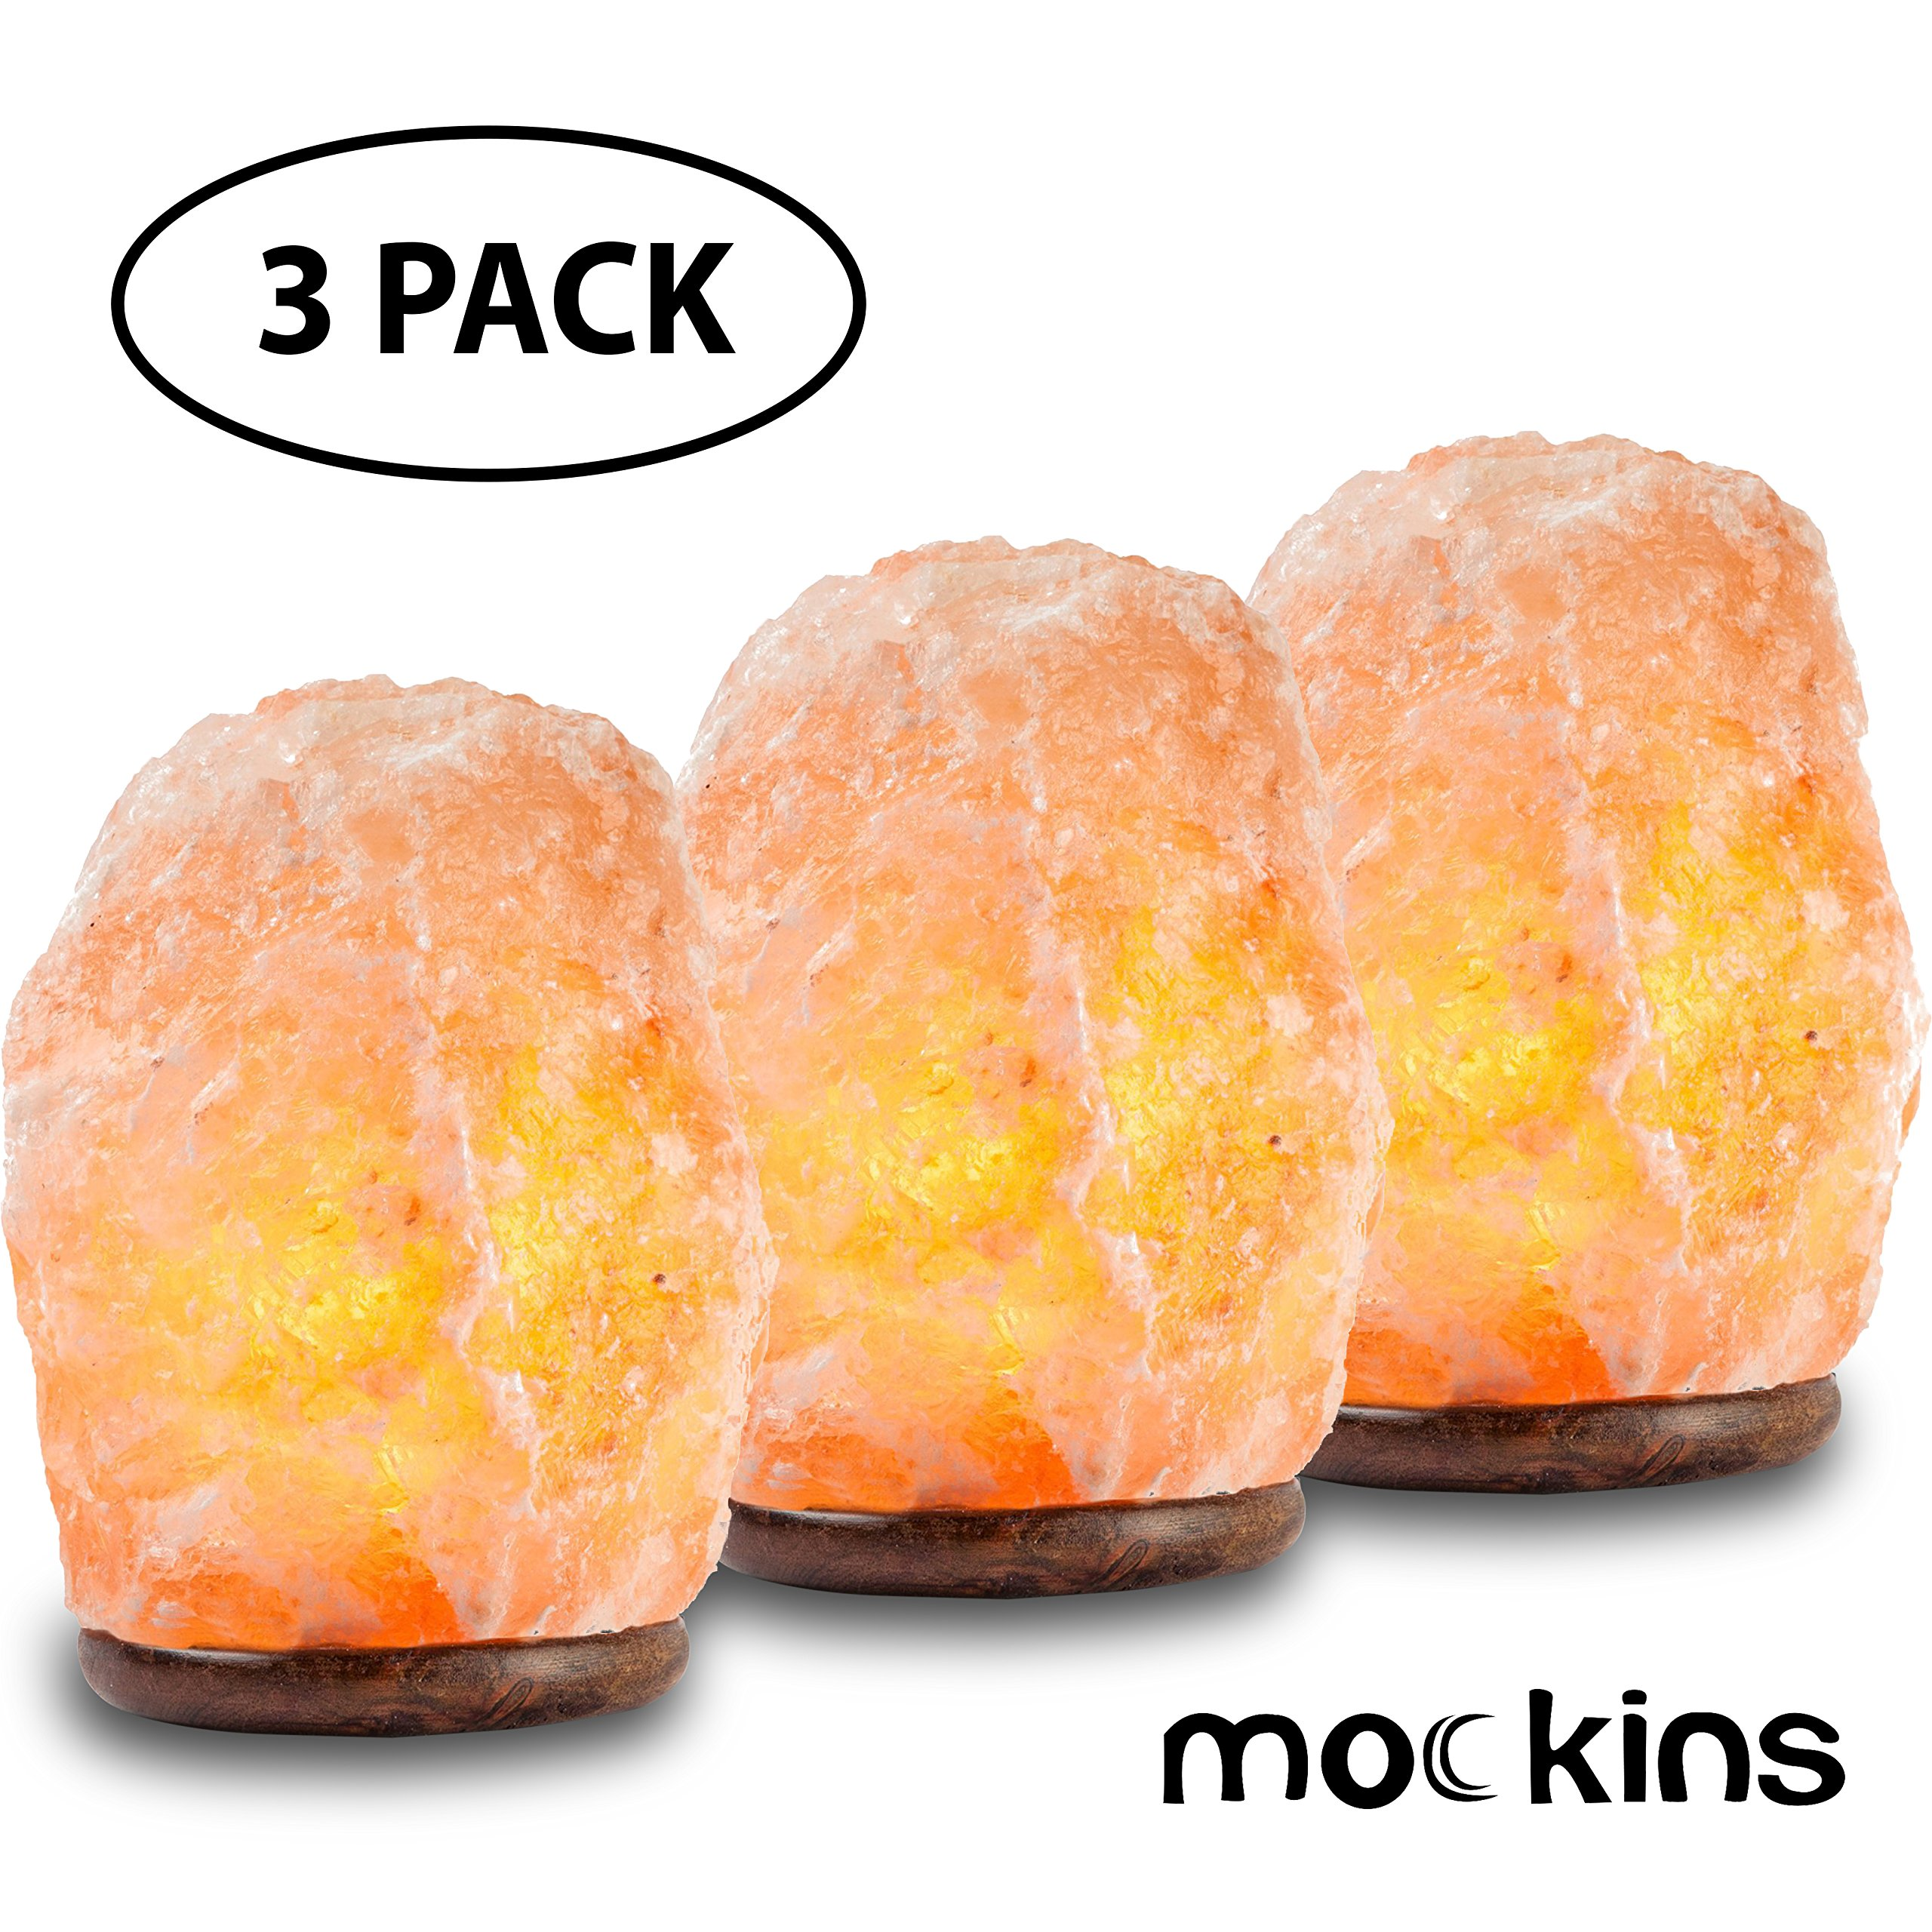 mockins 3 Pack Natural Hand Carved Himalayan Salt Lamp With A Stylish Wood Base & Bulb With On and Off Switch 6-8 Inches 5-7 lbs. - Holiday Gift …